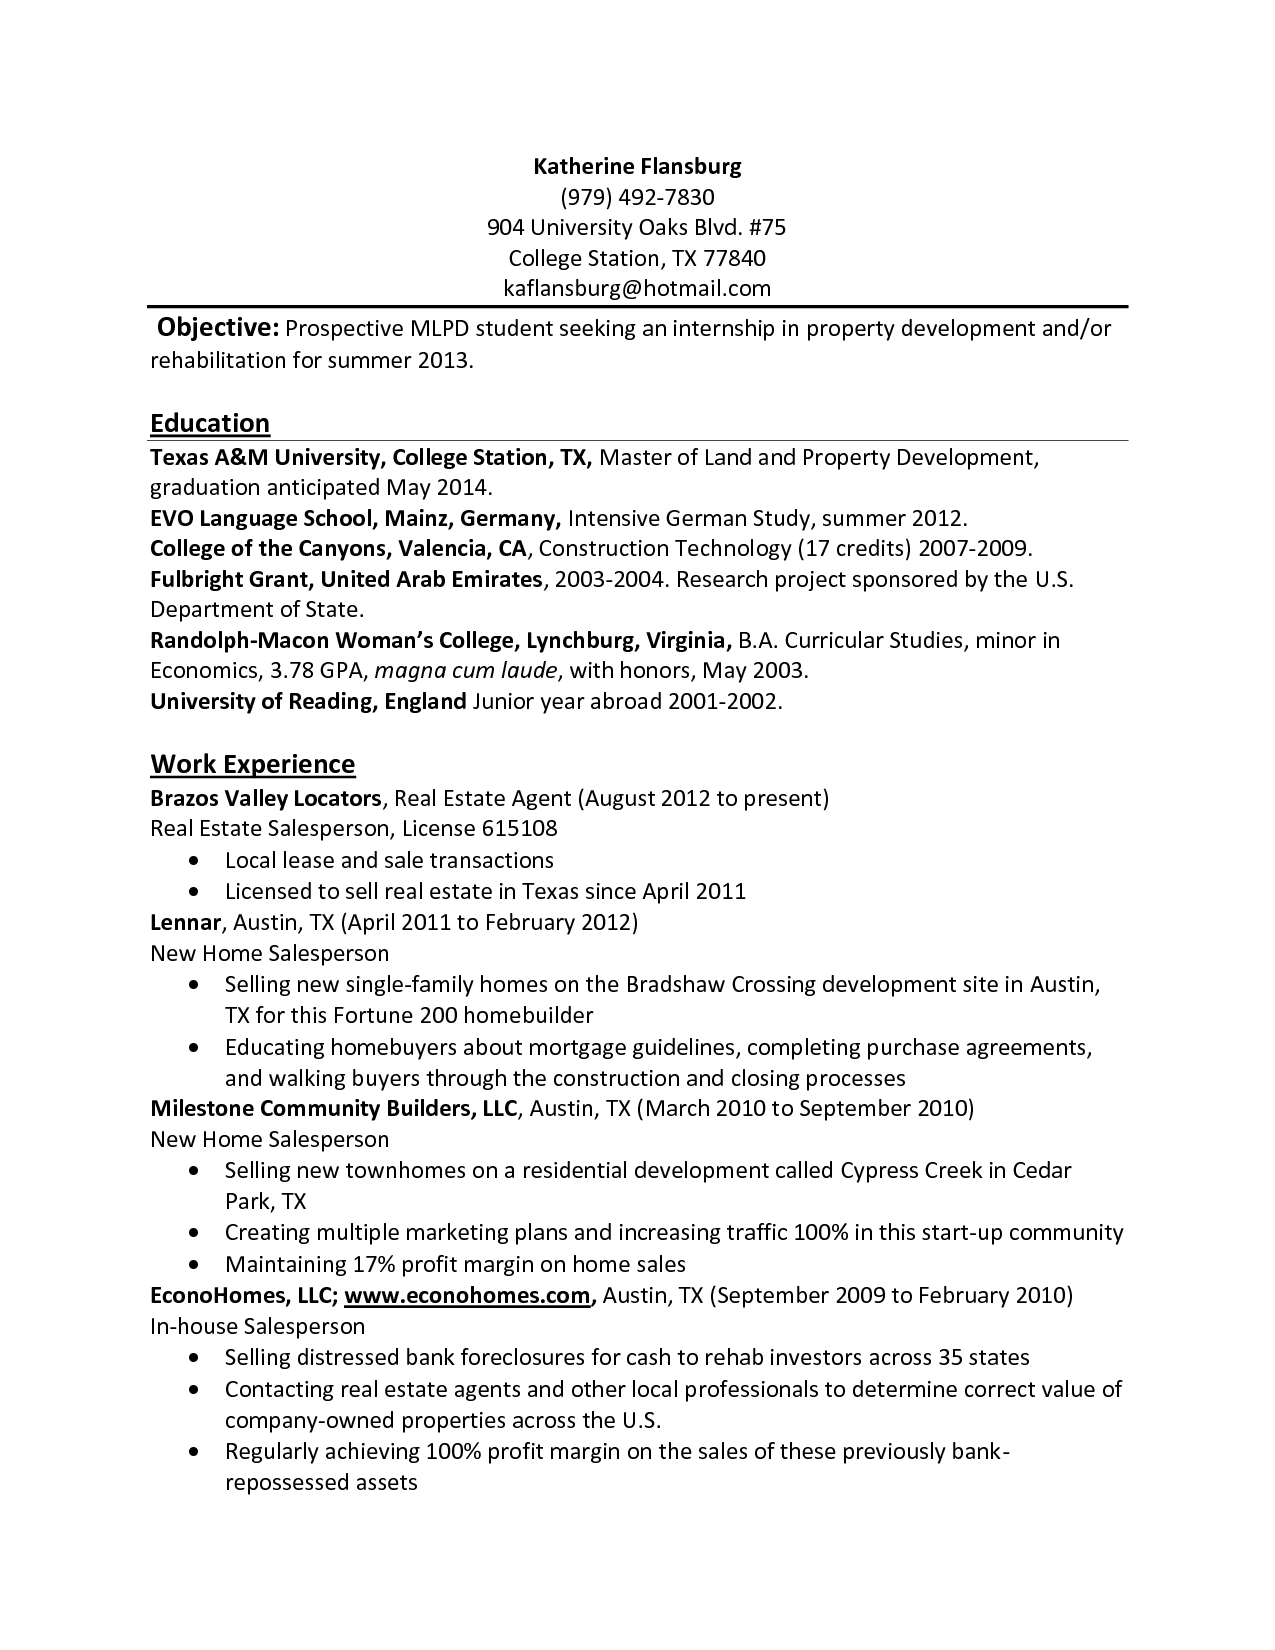 Amazing Resume For Undergraduate Psychology Students Guide To The Resume Psychology  Iupui Undergraduate Resume Sample For Undergraduate  Psychology Major Resume